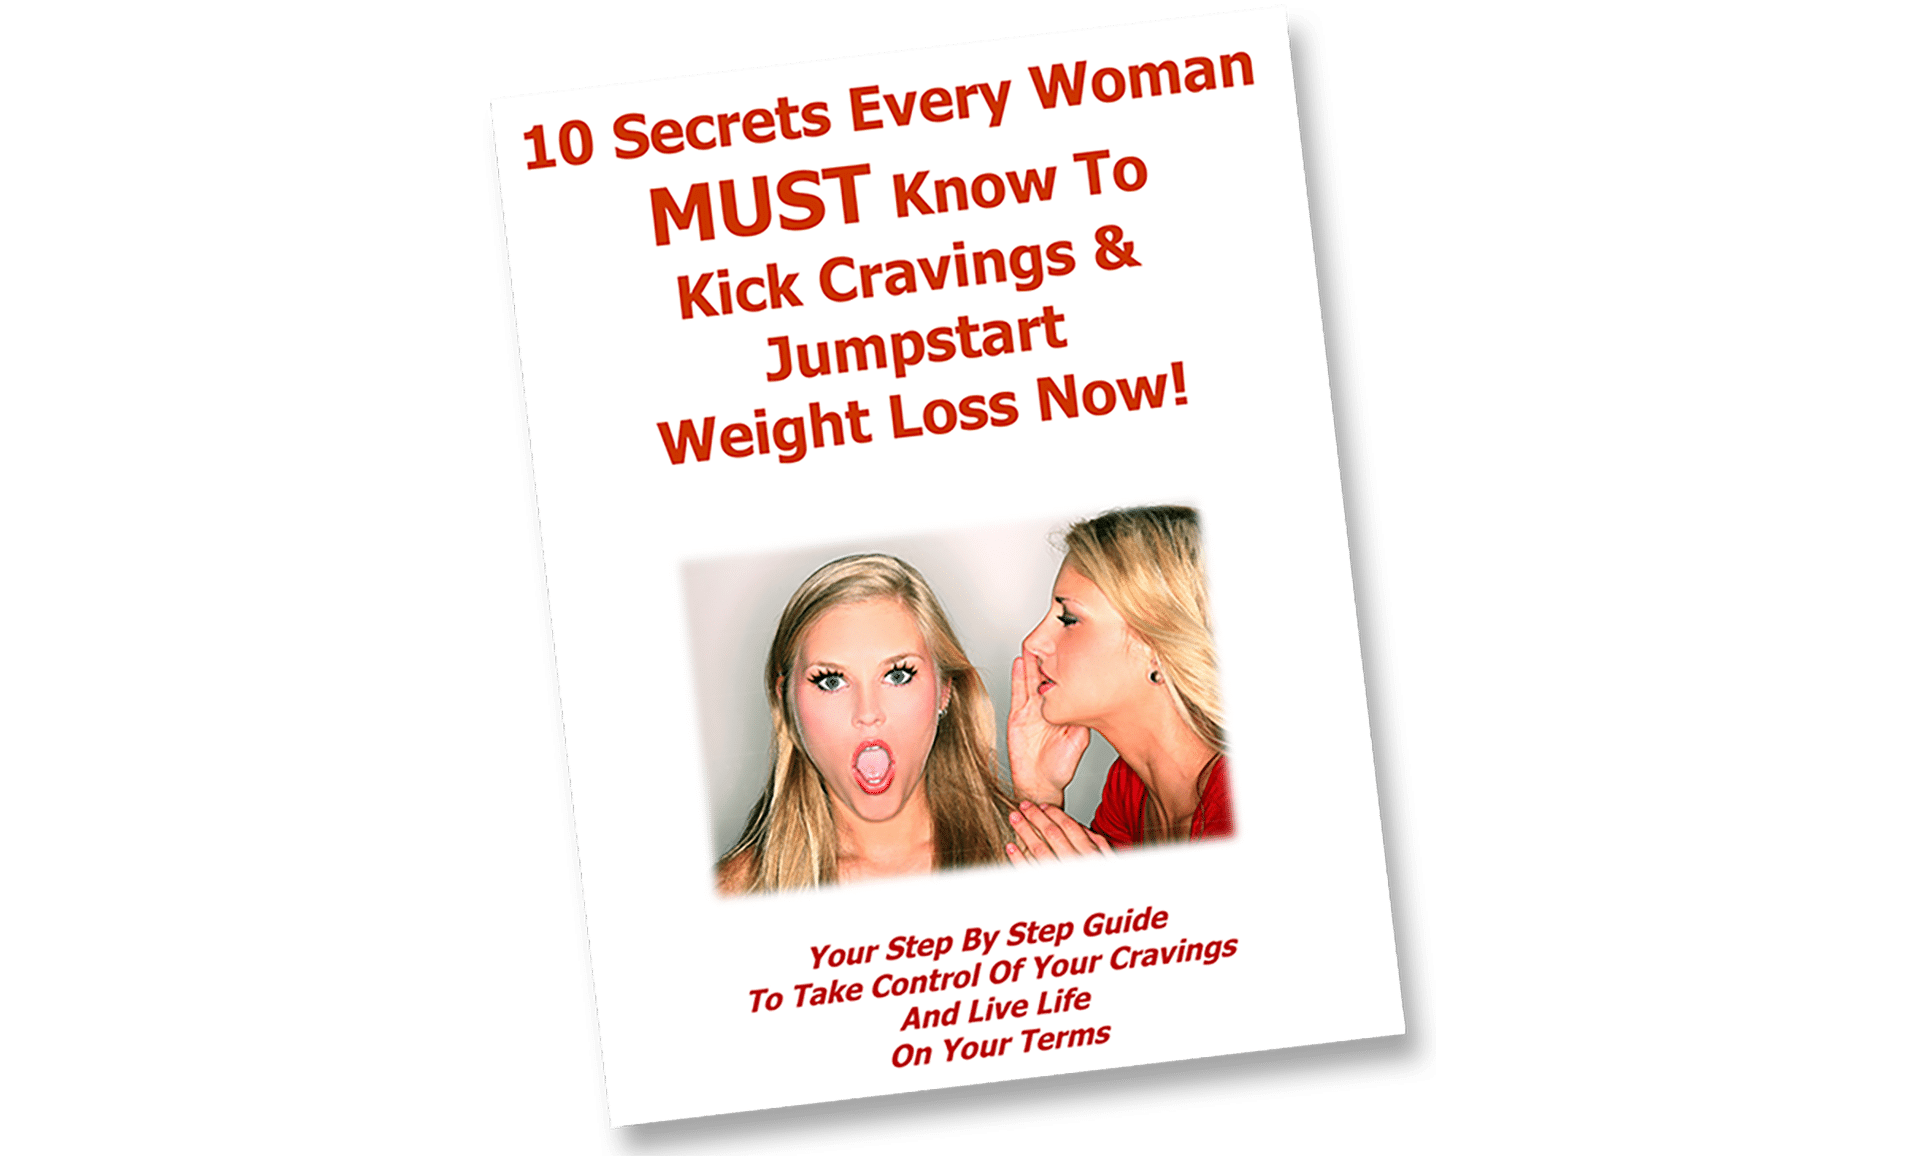 10 Secrets Every Woman MUST Know to Kick Cravings and Jumpstart Weight Loss Now